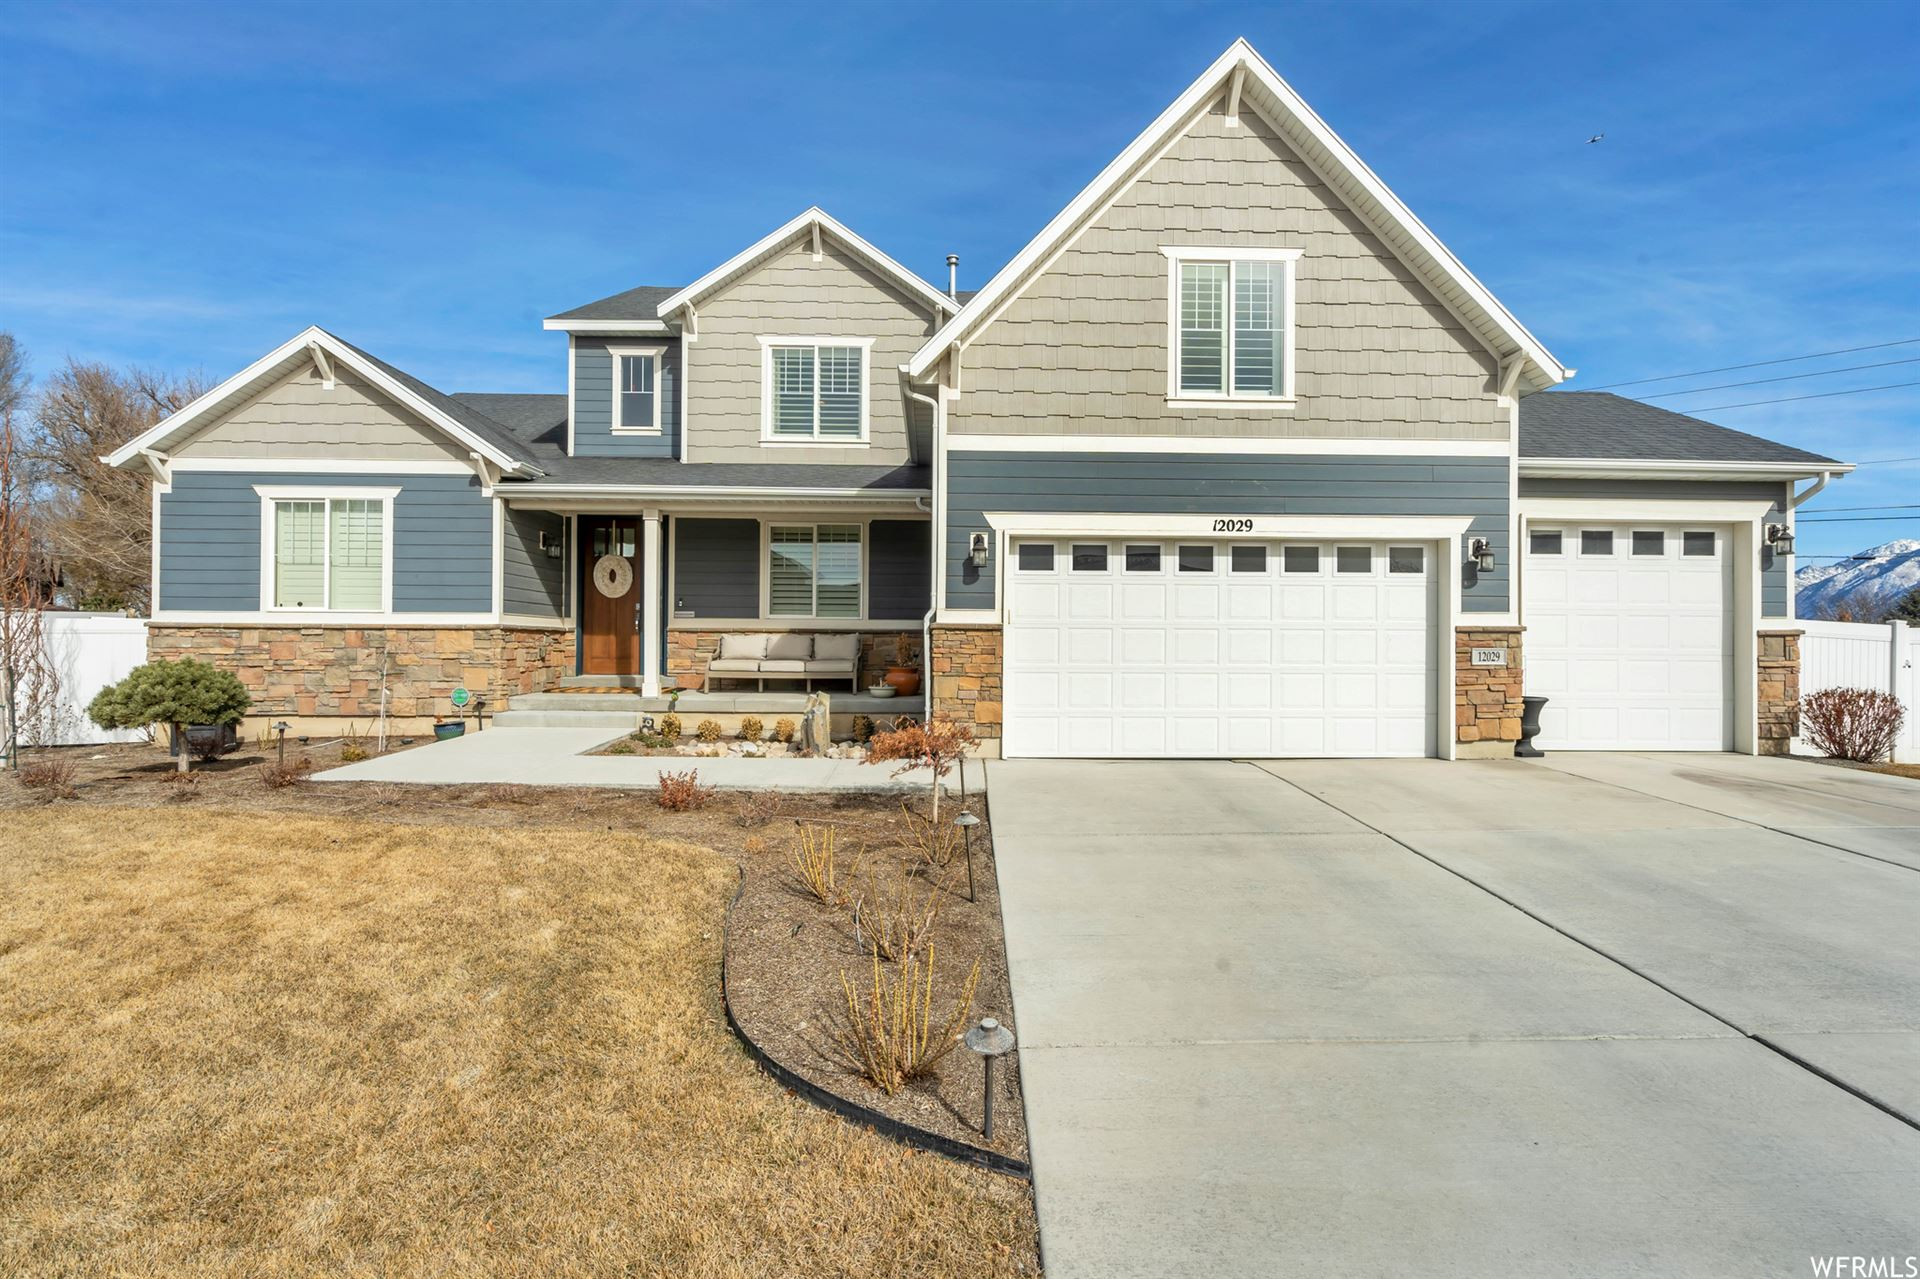 Photo of 12029 S ENDEAVOR CIR, Riverton, UT 84065 (MLS # 1727585)